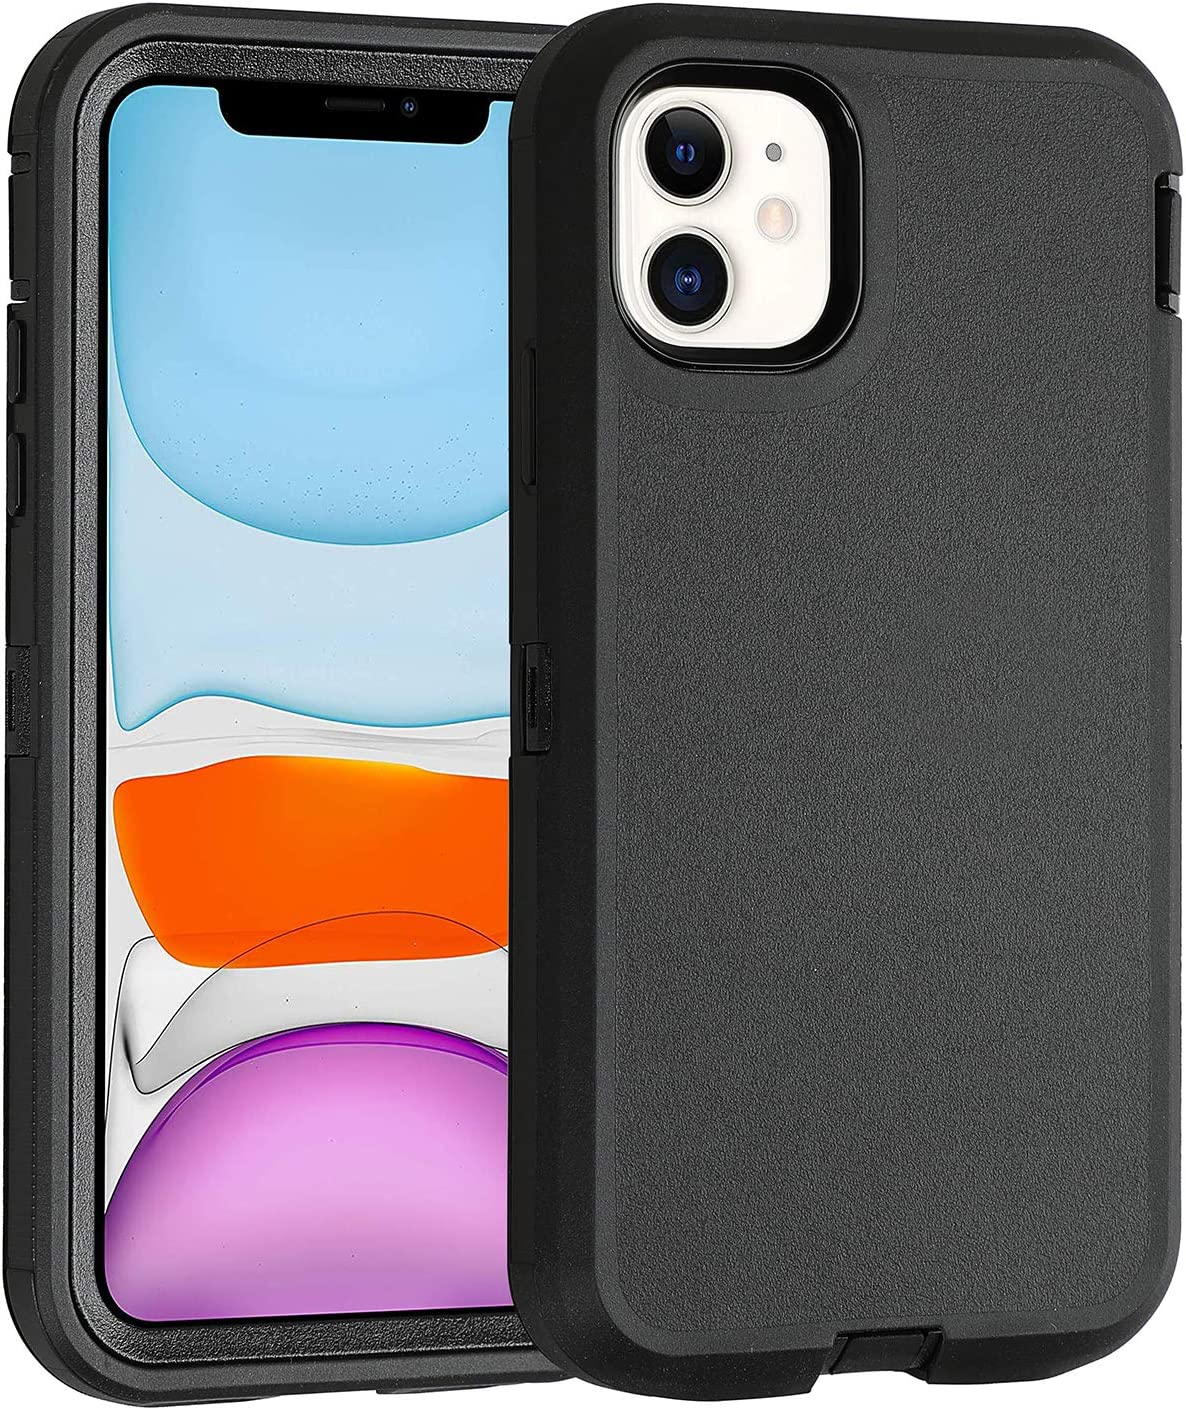 Smartelf Case for iPhone 11 Heavy Duty with Built-in Screen Protector Shockproof 3 in 1 Full Body Protective Cover Dust Proof Drop Protection Hard Shell for iPhone 11 2019 6.1